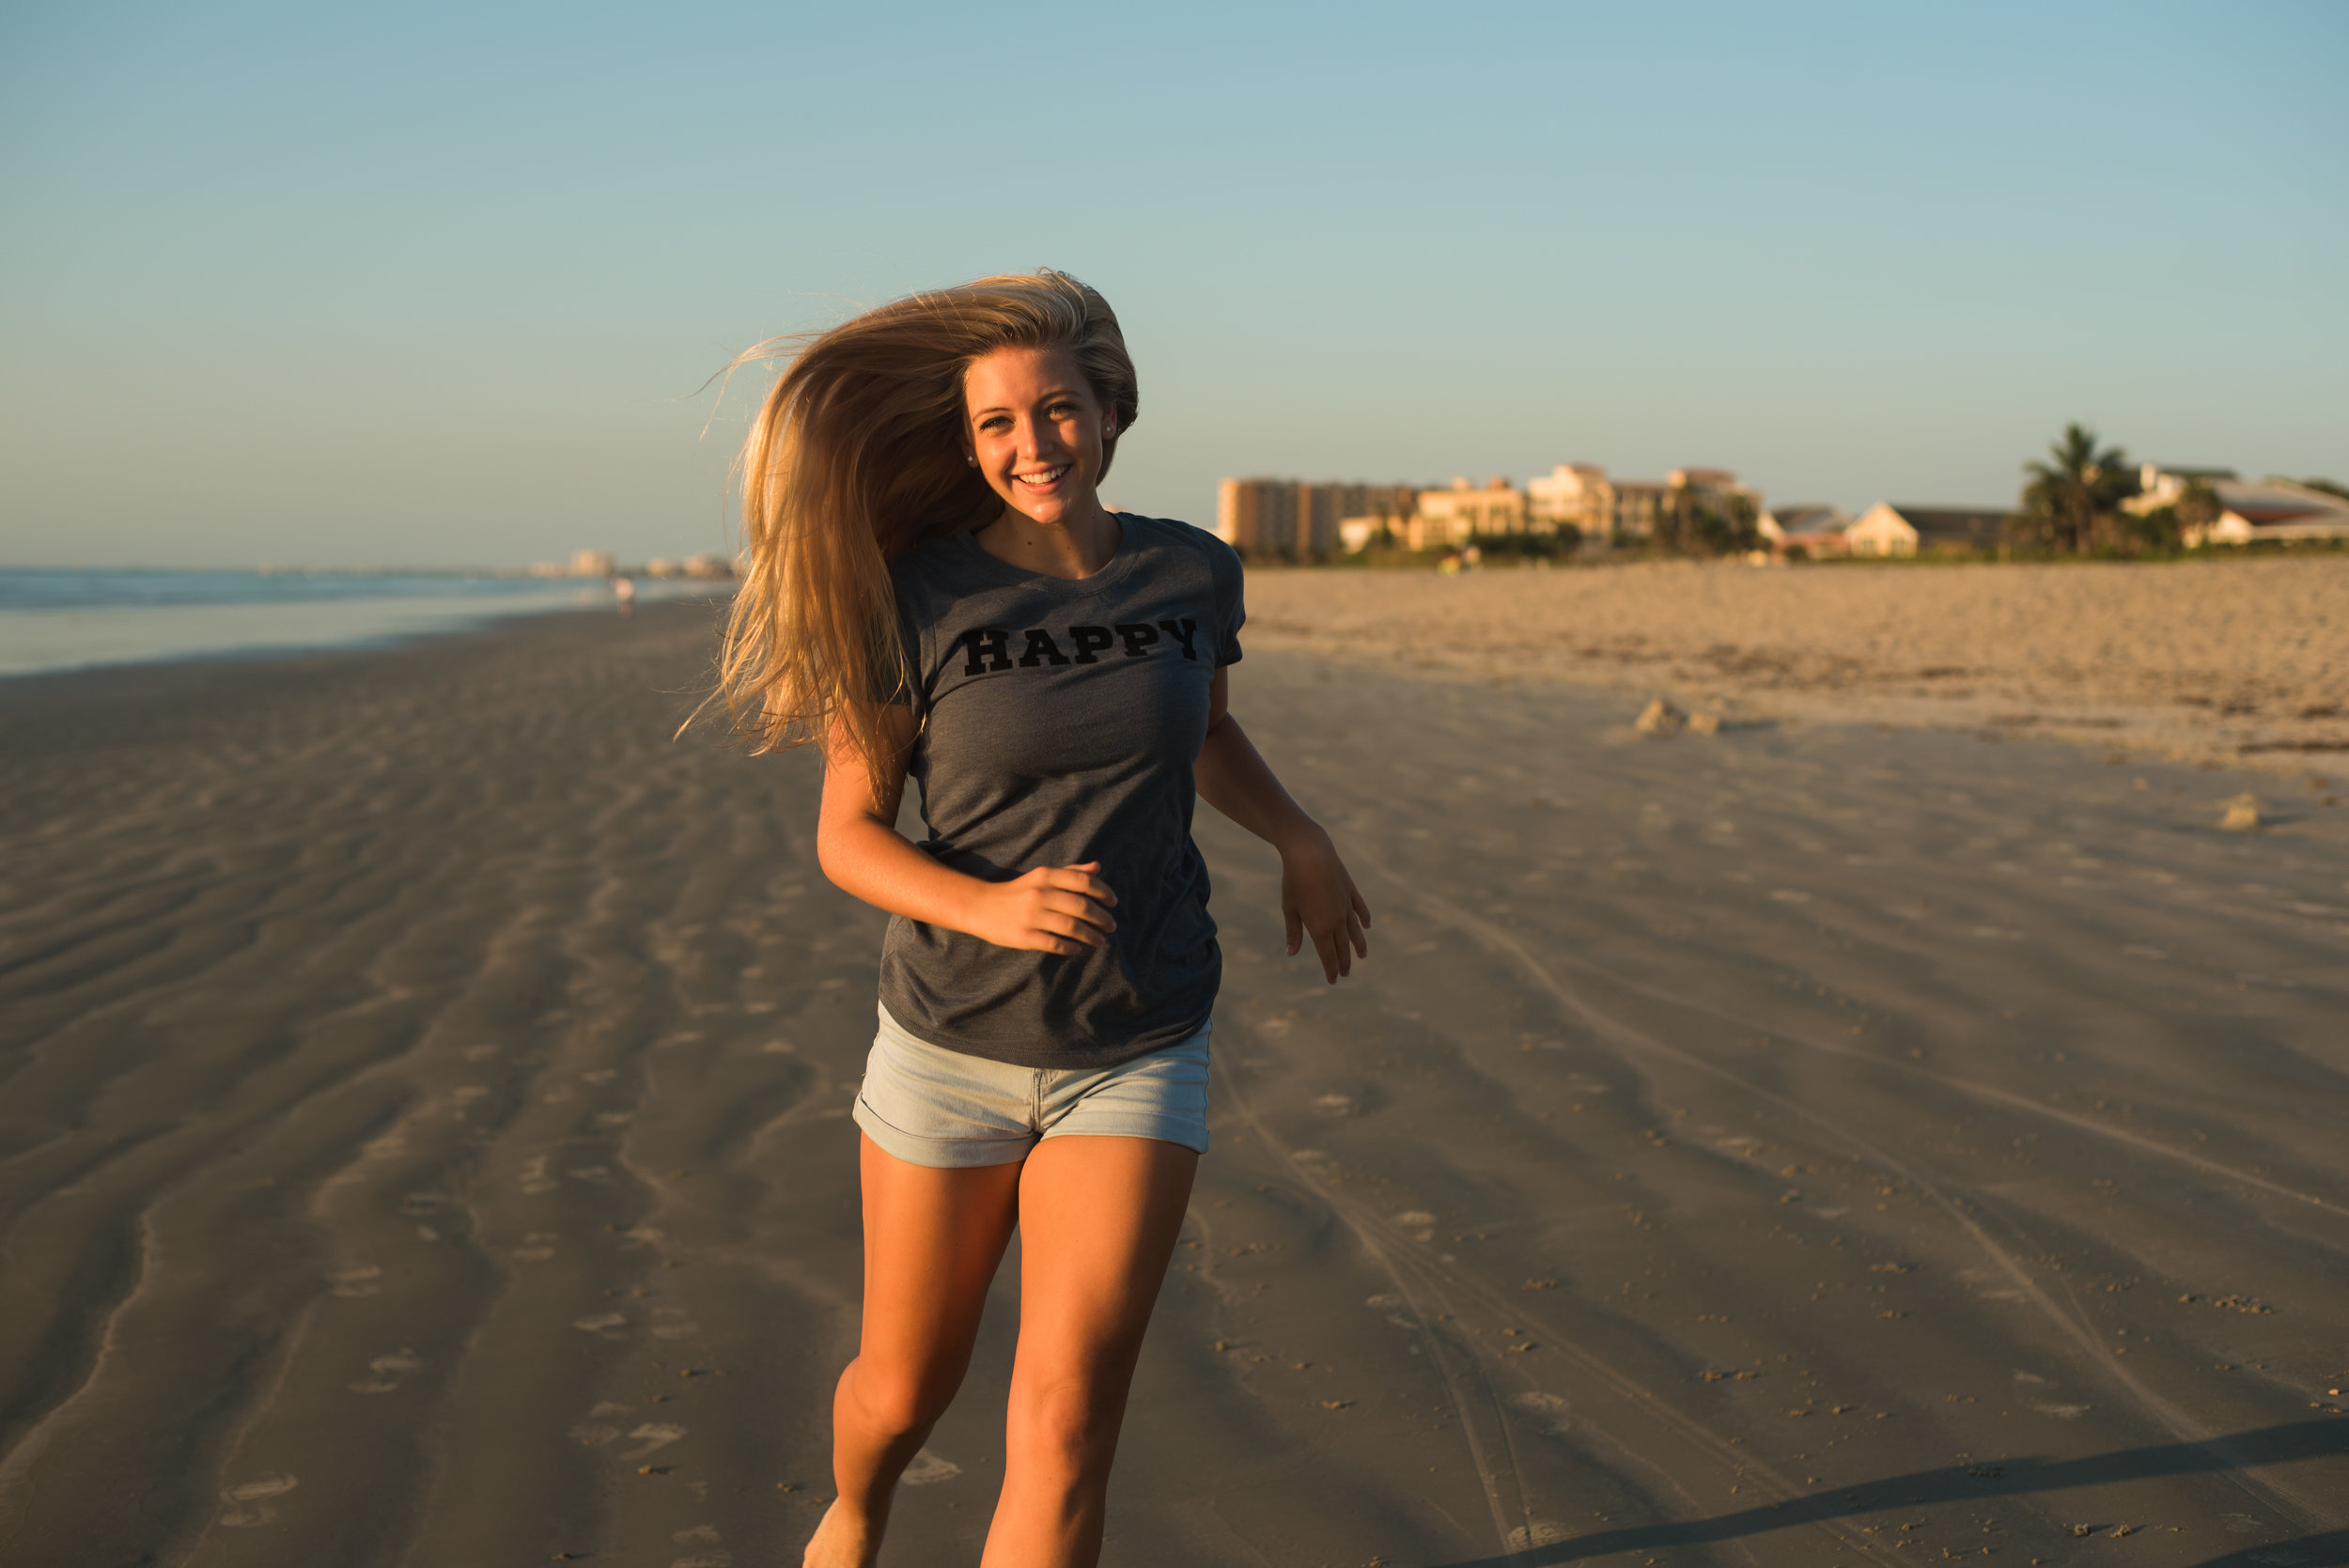 maddie-cocoa-beach-senior-photo-1-29.jpg